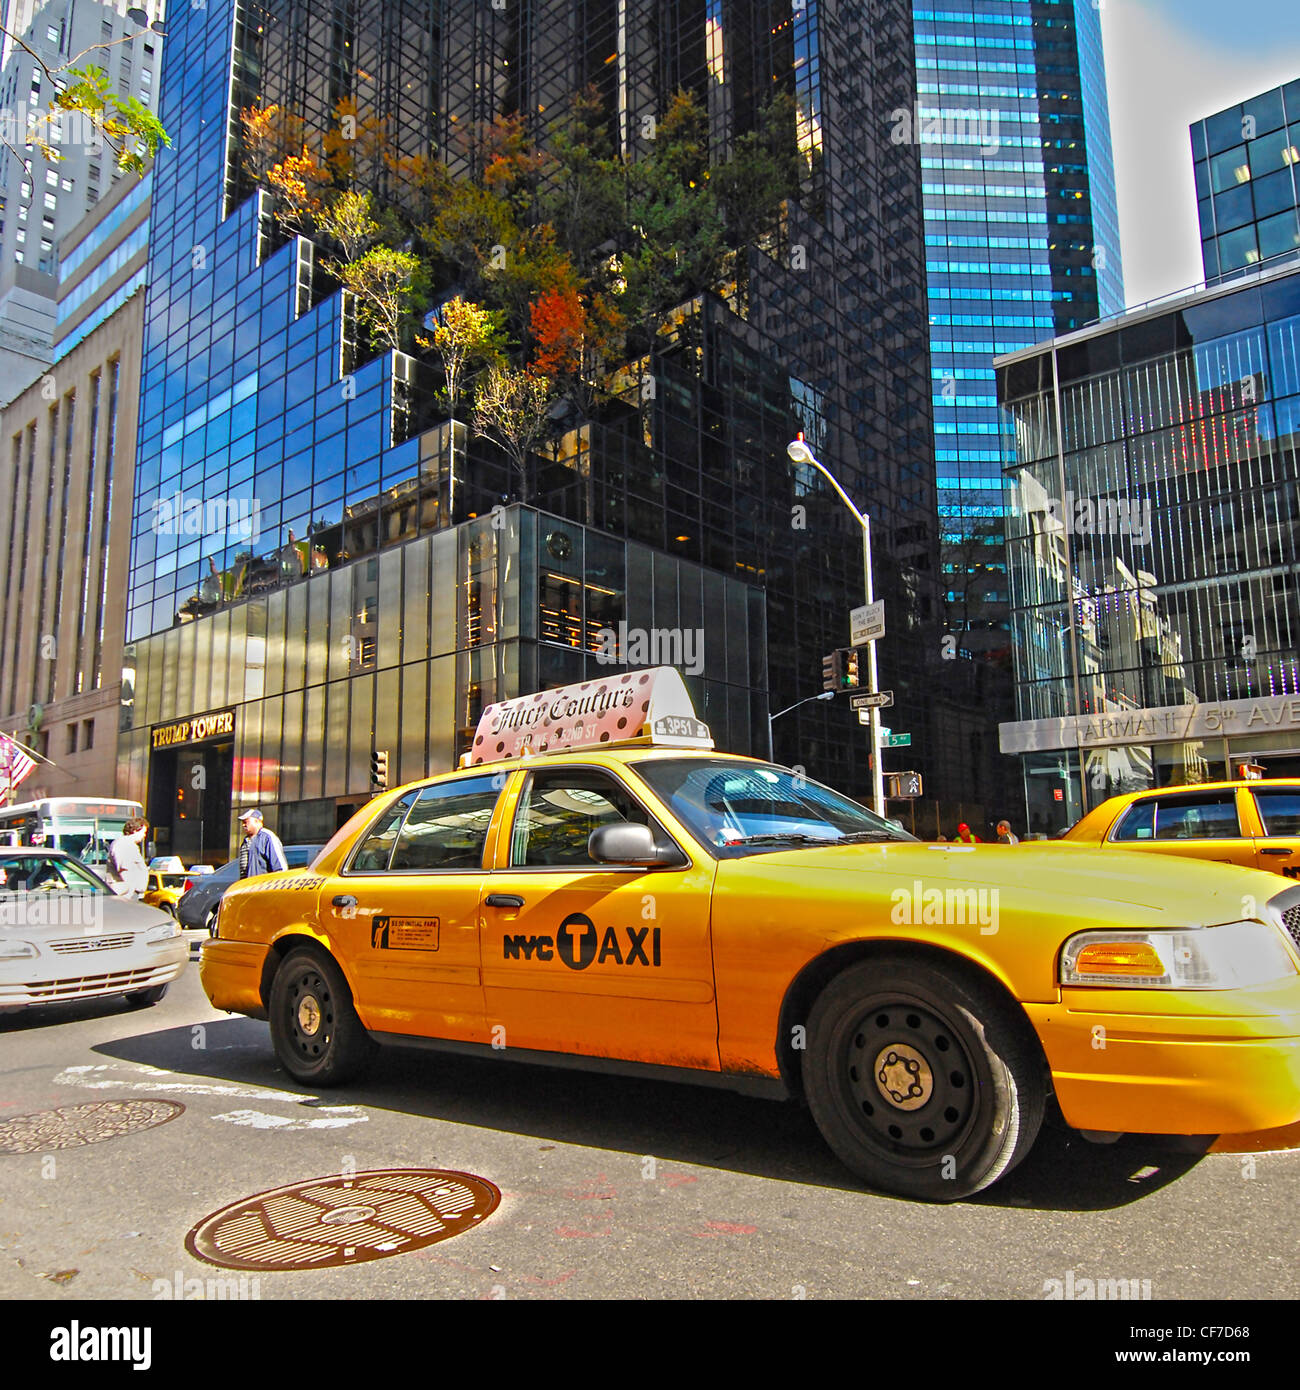 Taxi cab on 5th Avenue in front of Trump Tower, Manhattan, New York City. - Stock Image